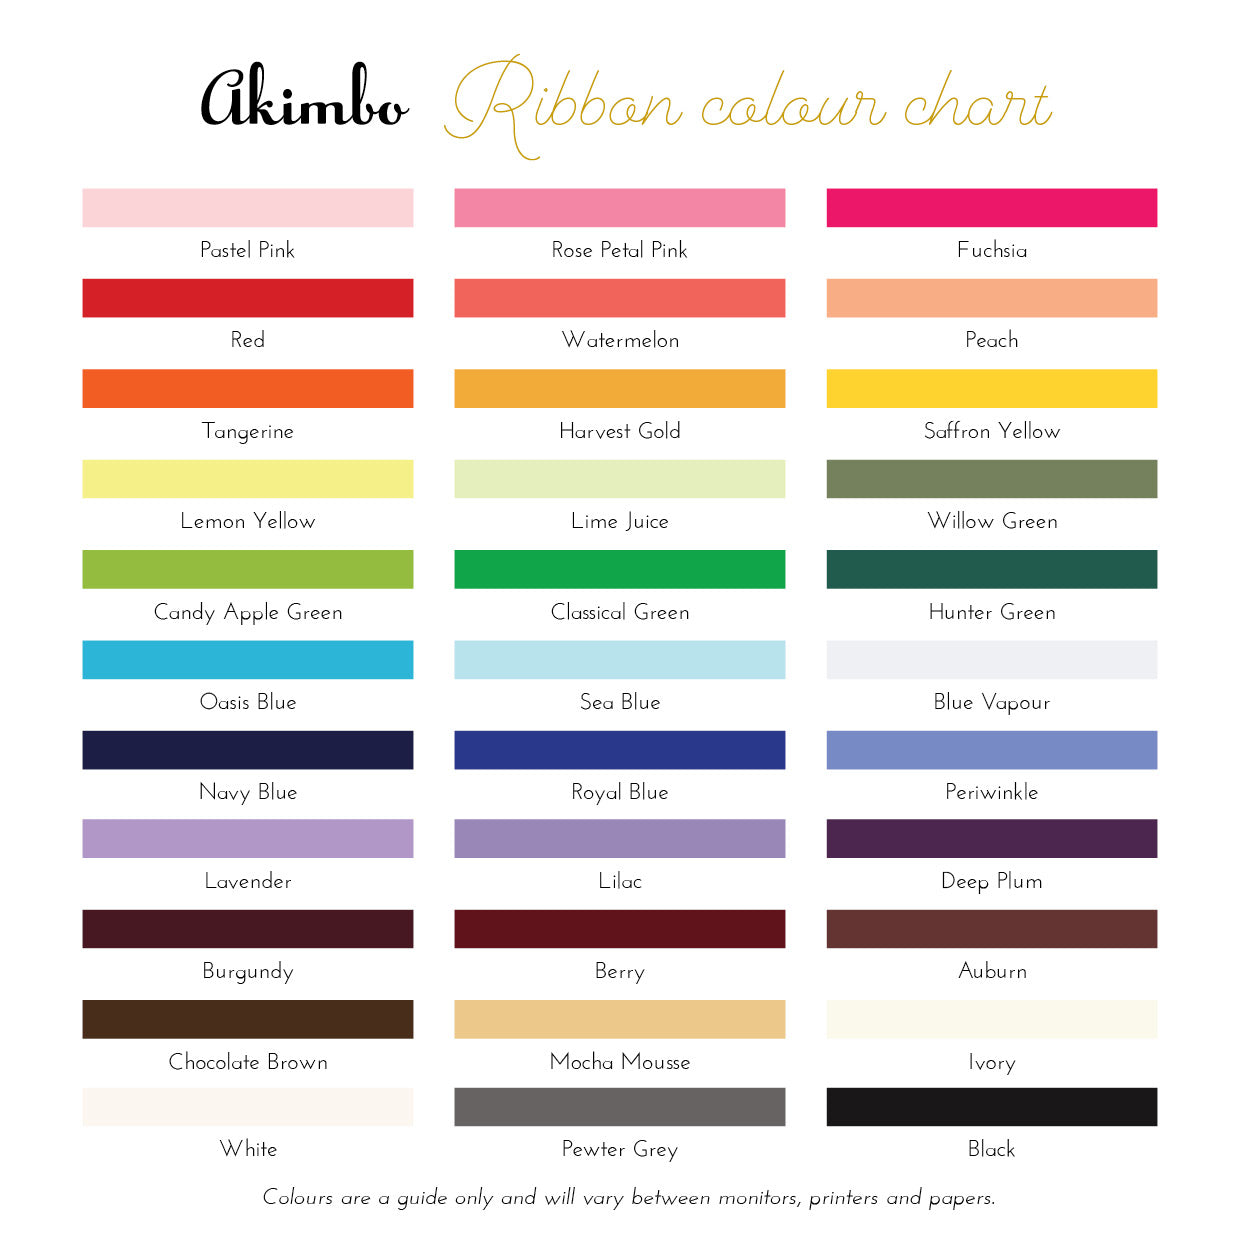 Akimbo ribbon colour chart